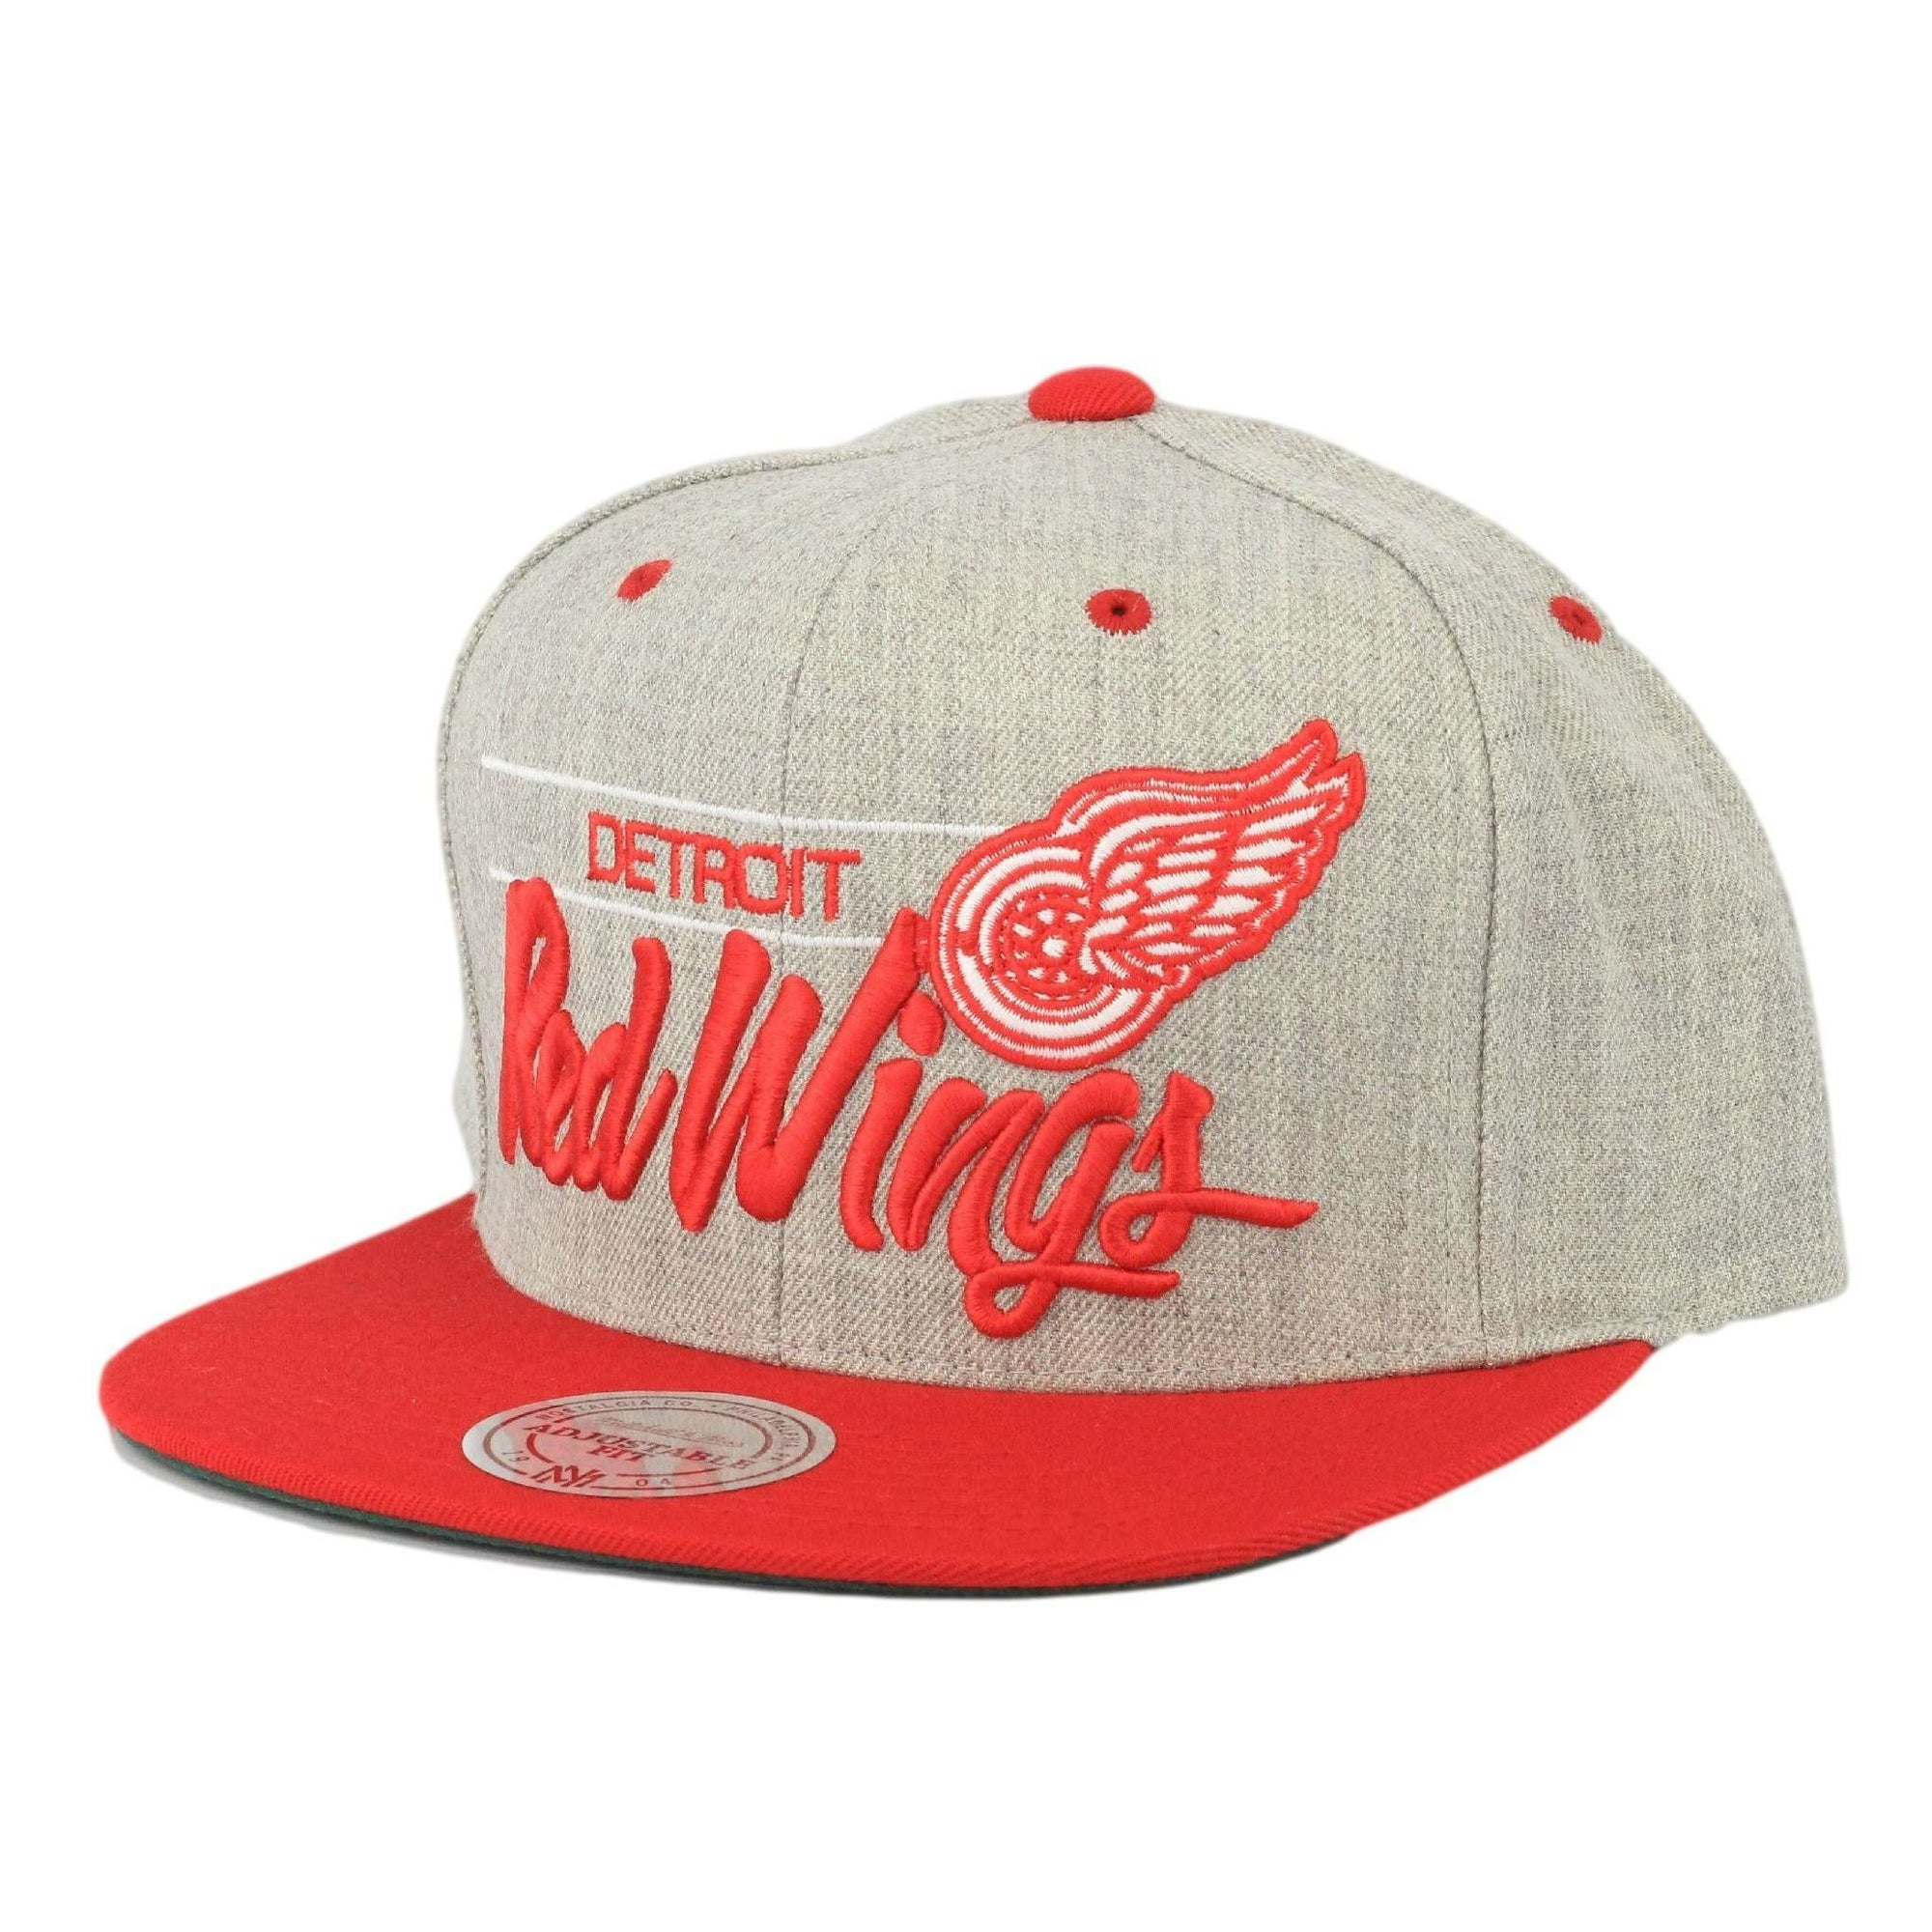 17ef4eeddd5da ireland mitchell and ness detroit red wings gray city bar gray red snapback  03be2 5a1ef